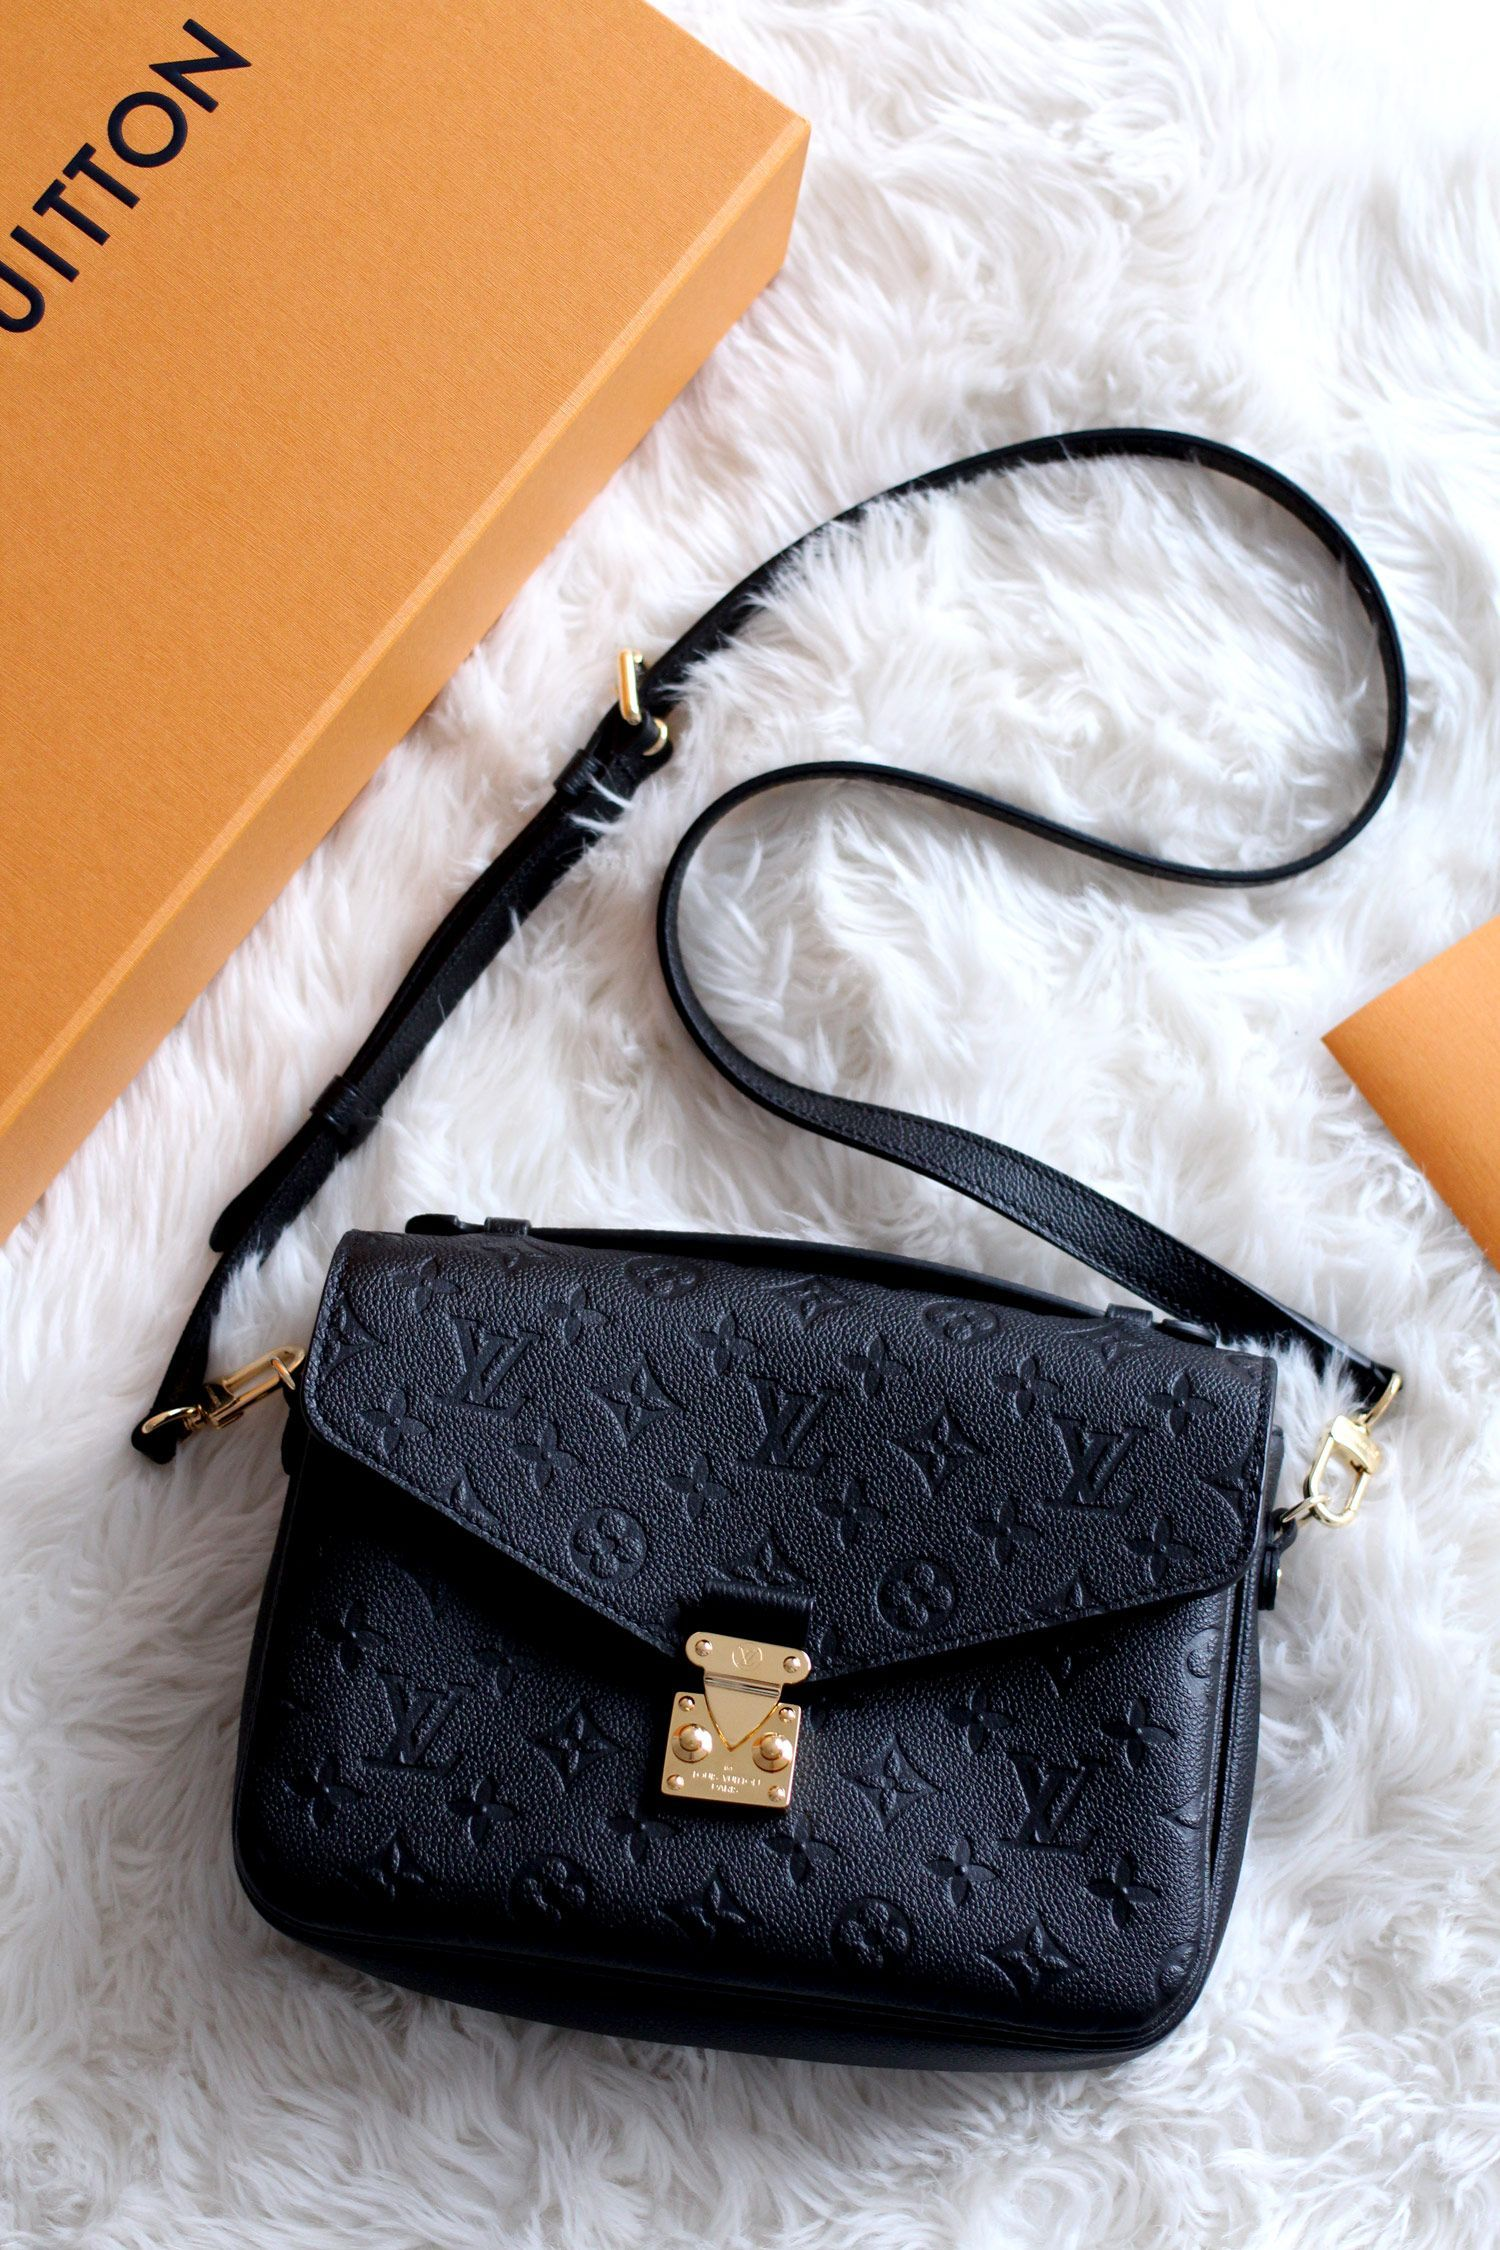 f180494f23a8 The Louis Vuitton Pochette Metis in black monogram empreinte leather with  gold hardware - review and overview - luxury fashion blogger UK